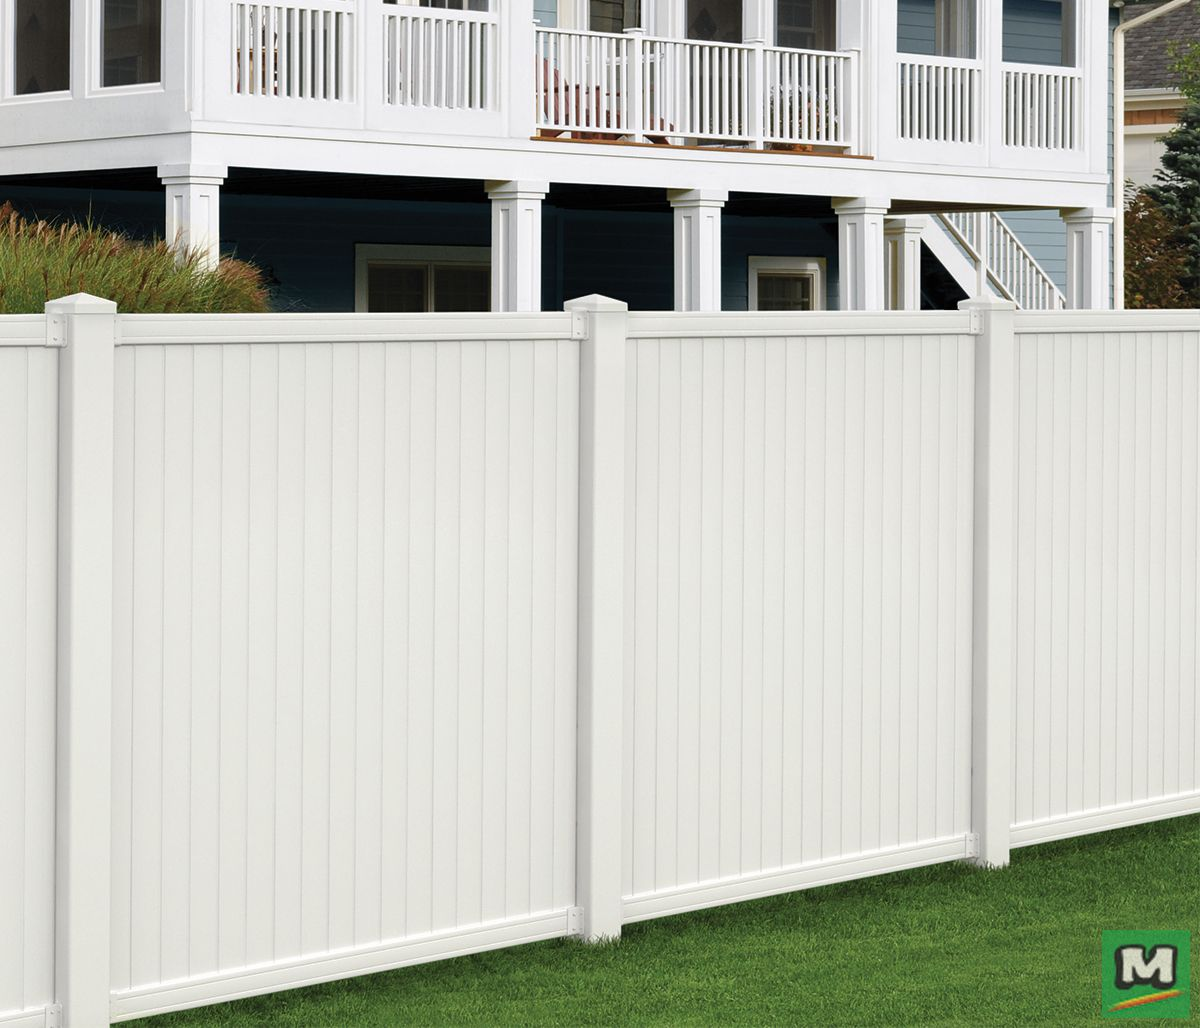 This 6 X 6 Belmont Vinyl Fence Panel Features A Unique Design That Securely Locks Pickets Into Place With A Building A Fence Fence Panels Vinyl Fence Panels